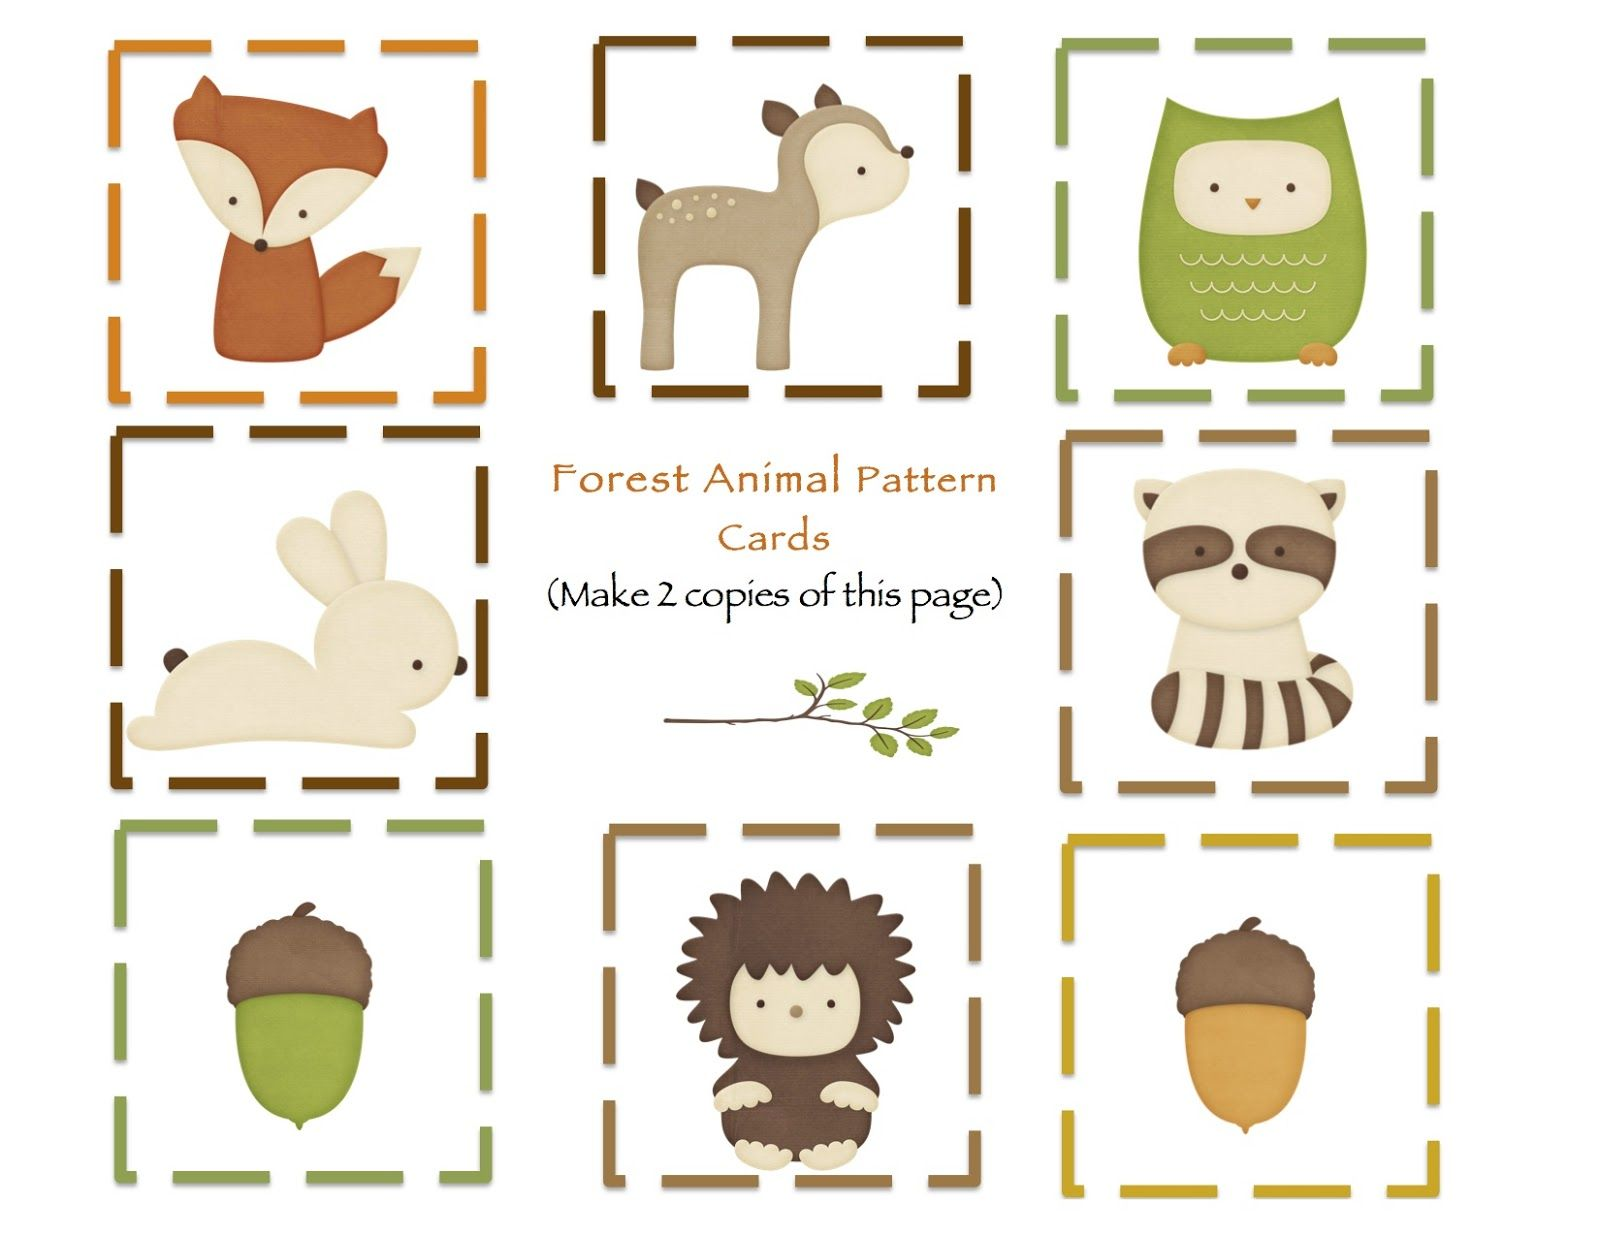 preschool printables forest animals printable decorations bulletin boards pinterest. Black Bedroom Furniture Sets. Home Design Ideas